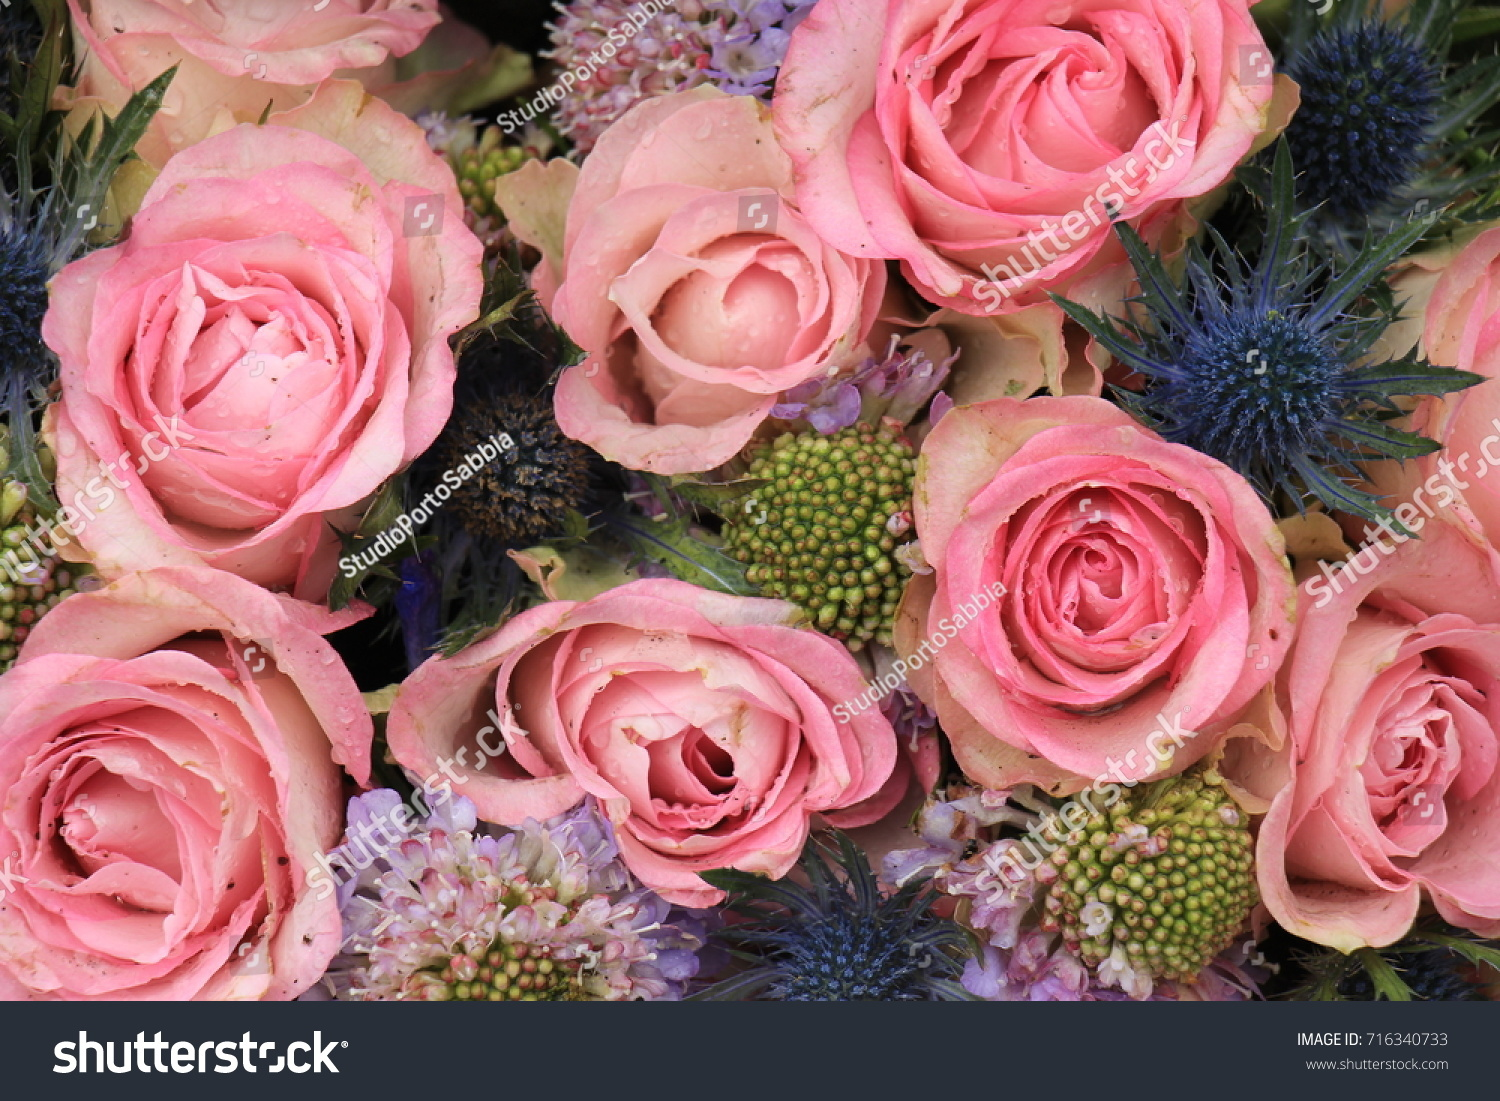 Pink Roses And Blue Sea Holly In A Wedding Flower Arrangement Ez